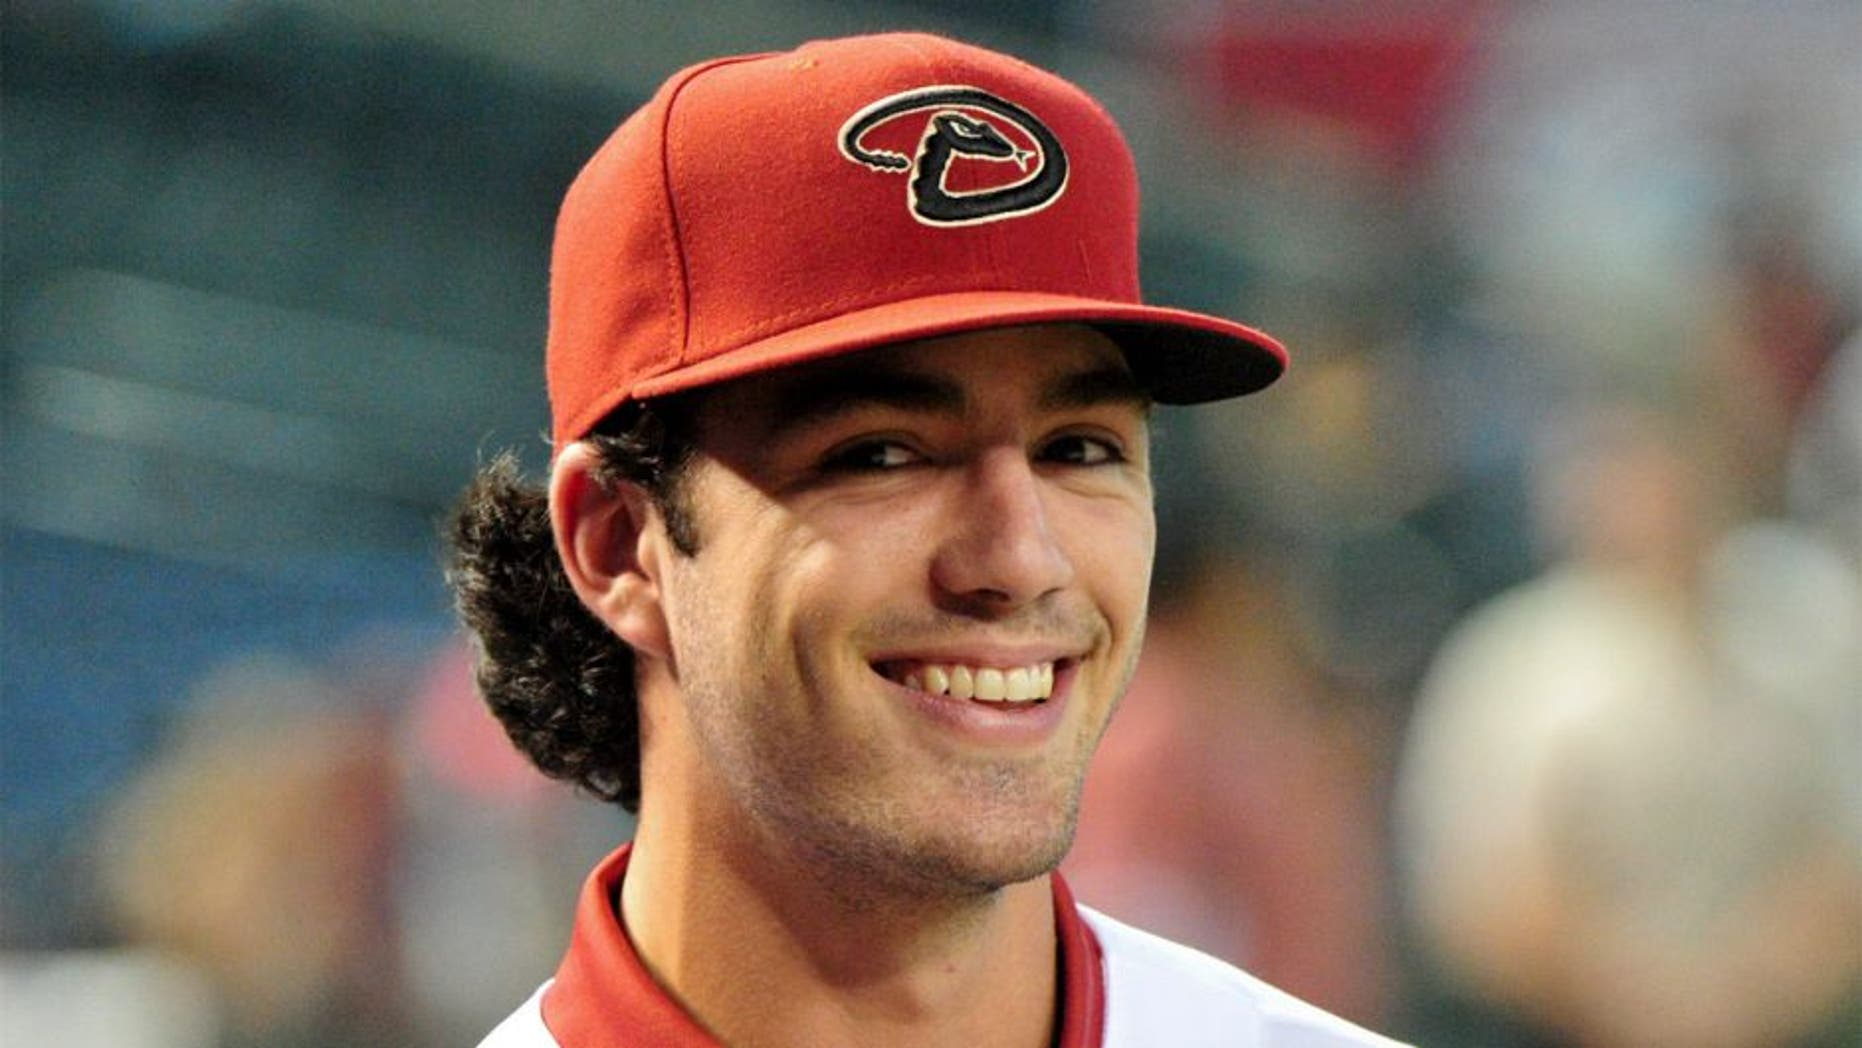 Jul 20, 2015; Phoenix, AZ, USA; First overall pick in the 2015 MLB draft Dansby Swanson looks on after signing with the Arizona Diamondbacks at Chase Field. Mandatory Credit: Matt Kartozian-USA TODAY Sports